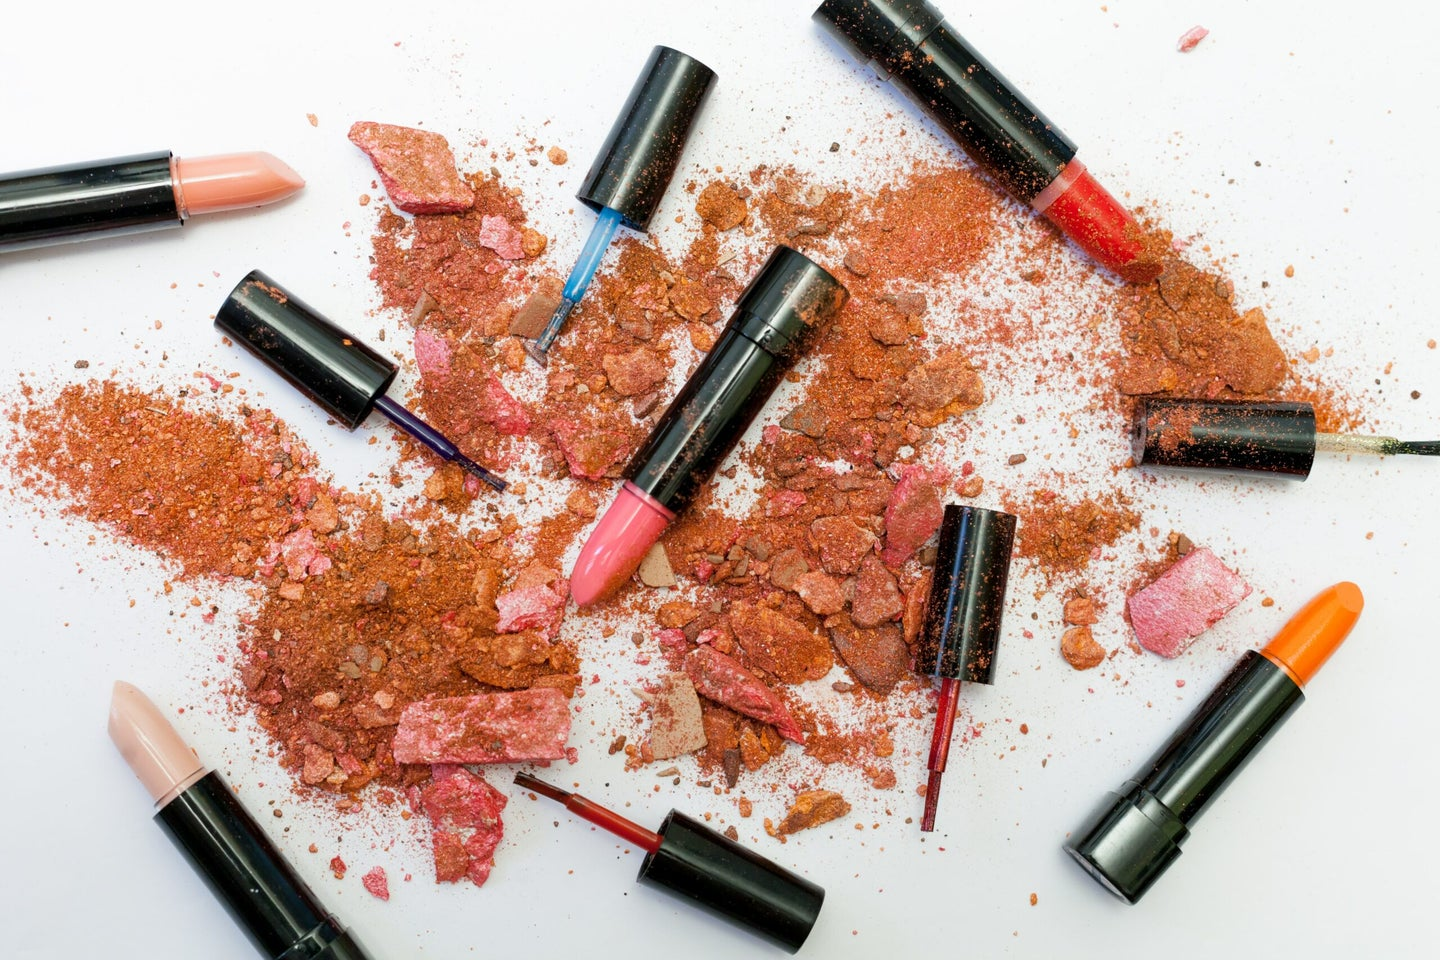 'Forever chemicals' could be lurking in your lipstick